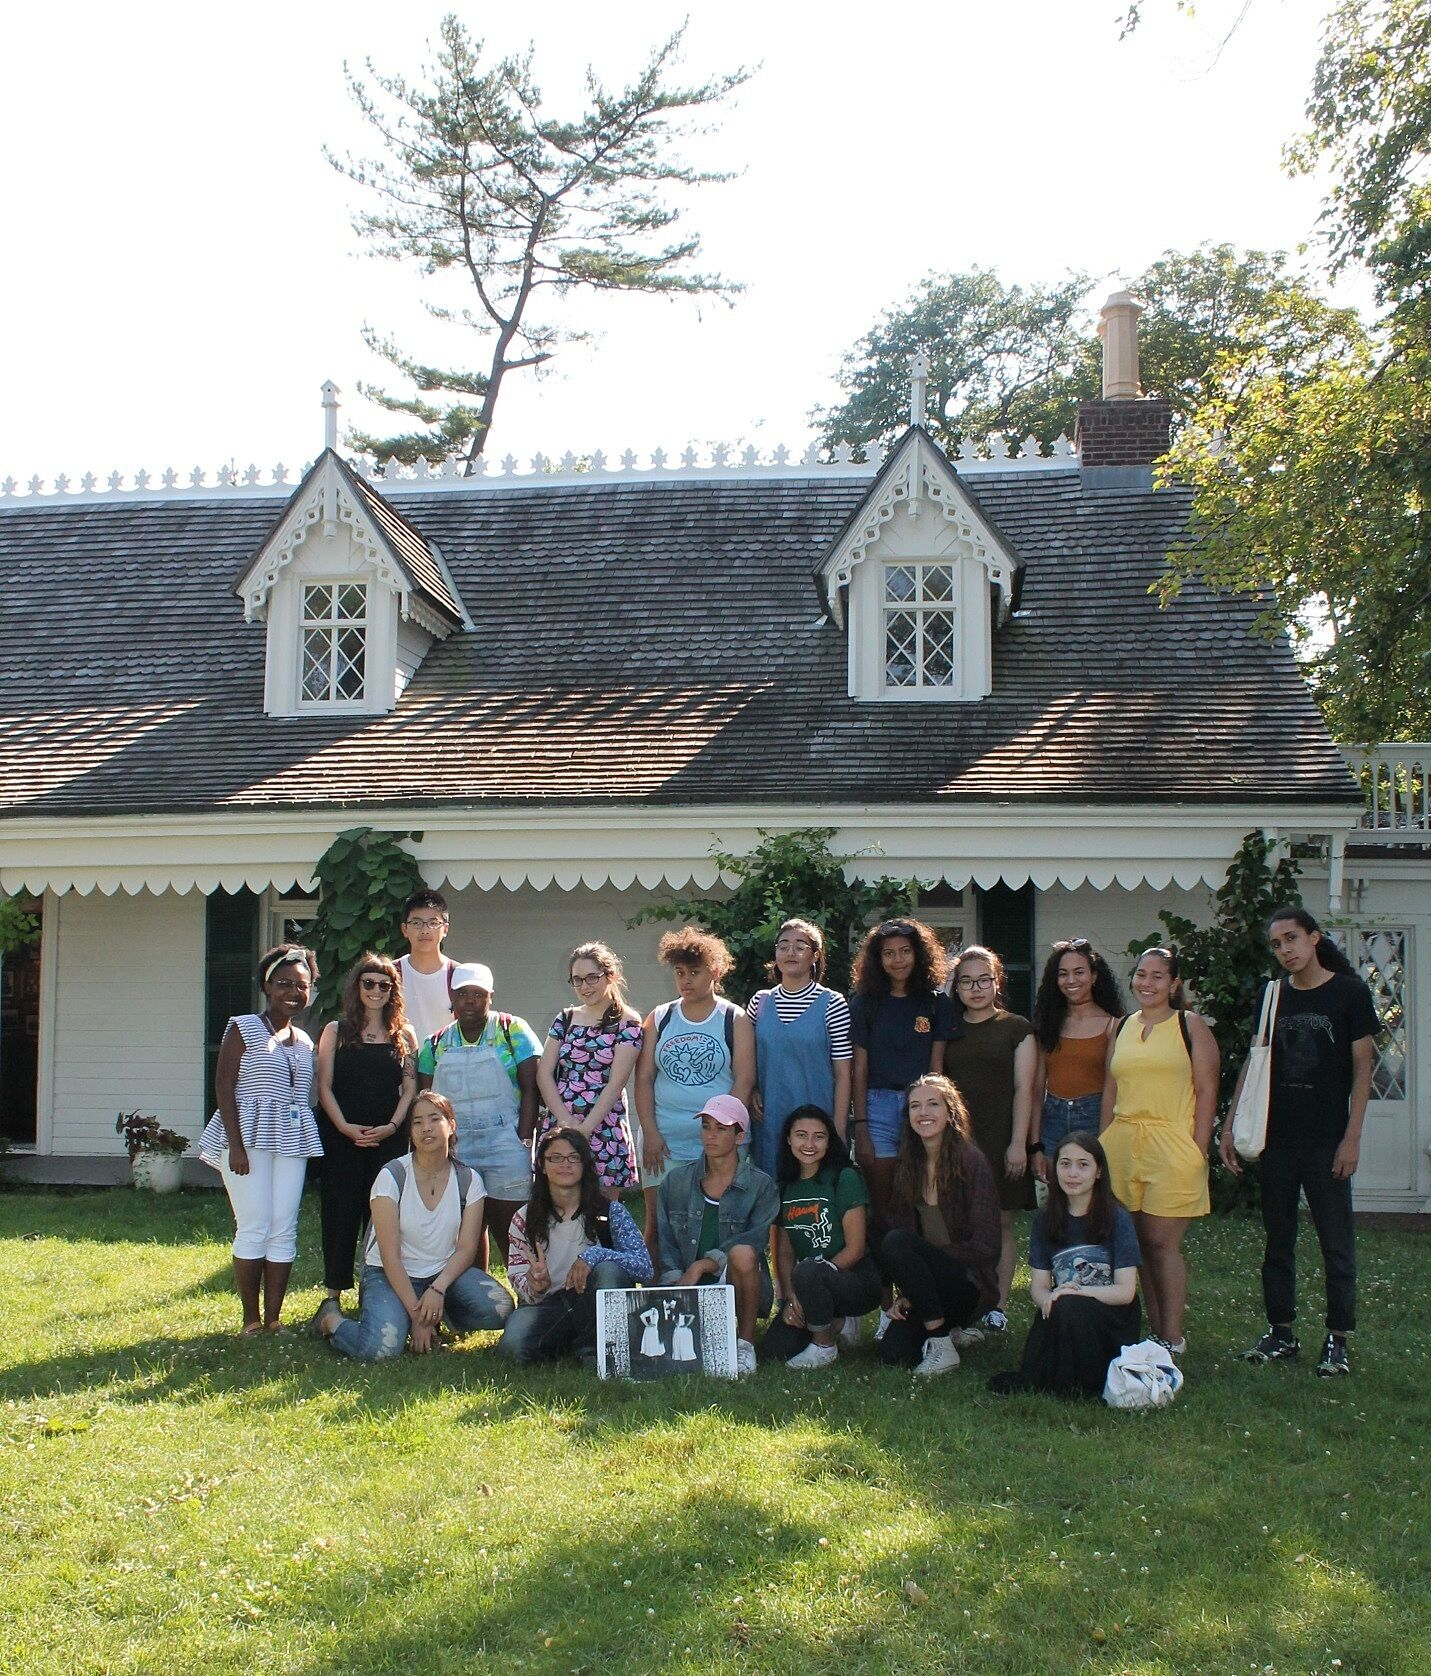 Students take picture in-front of artist's house.